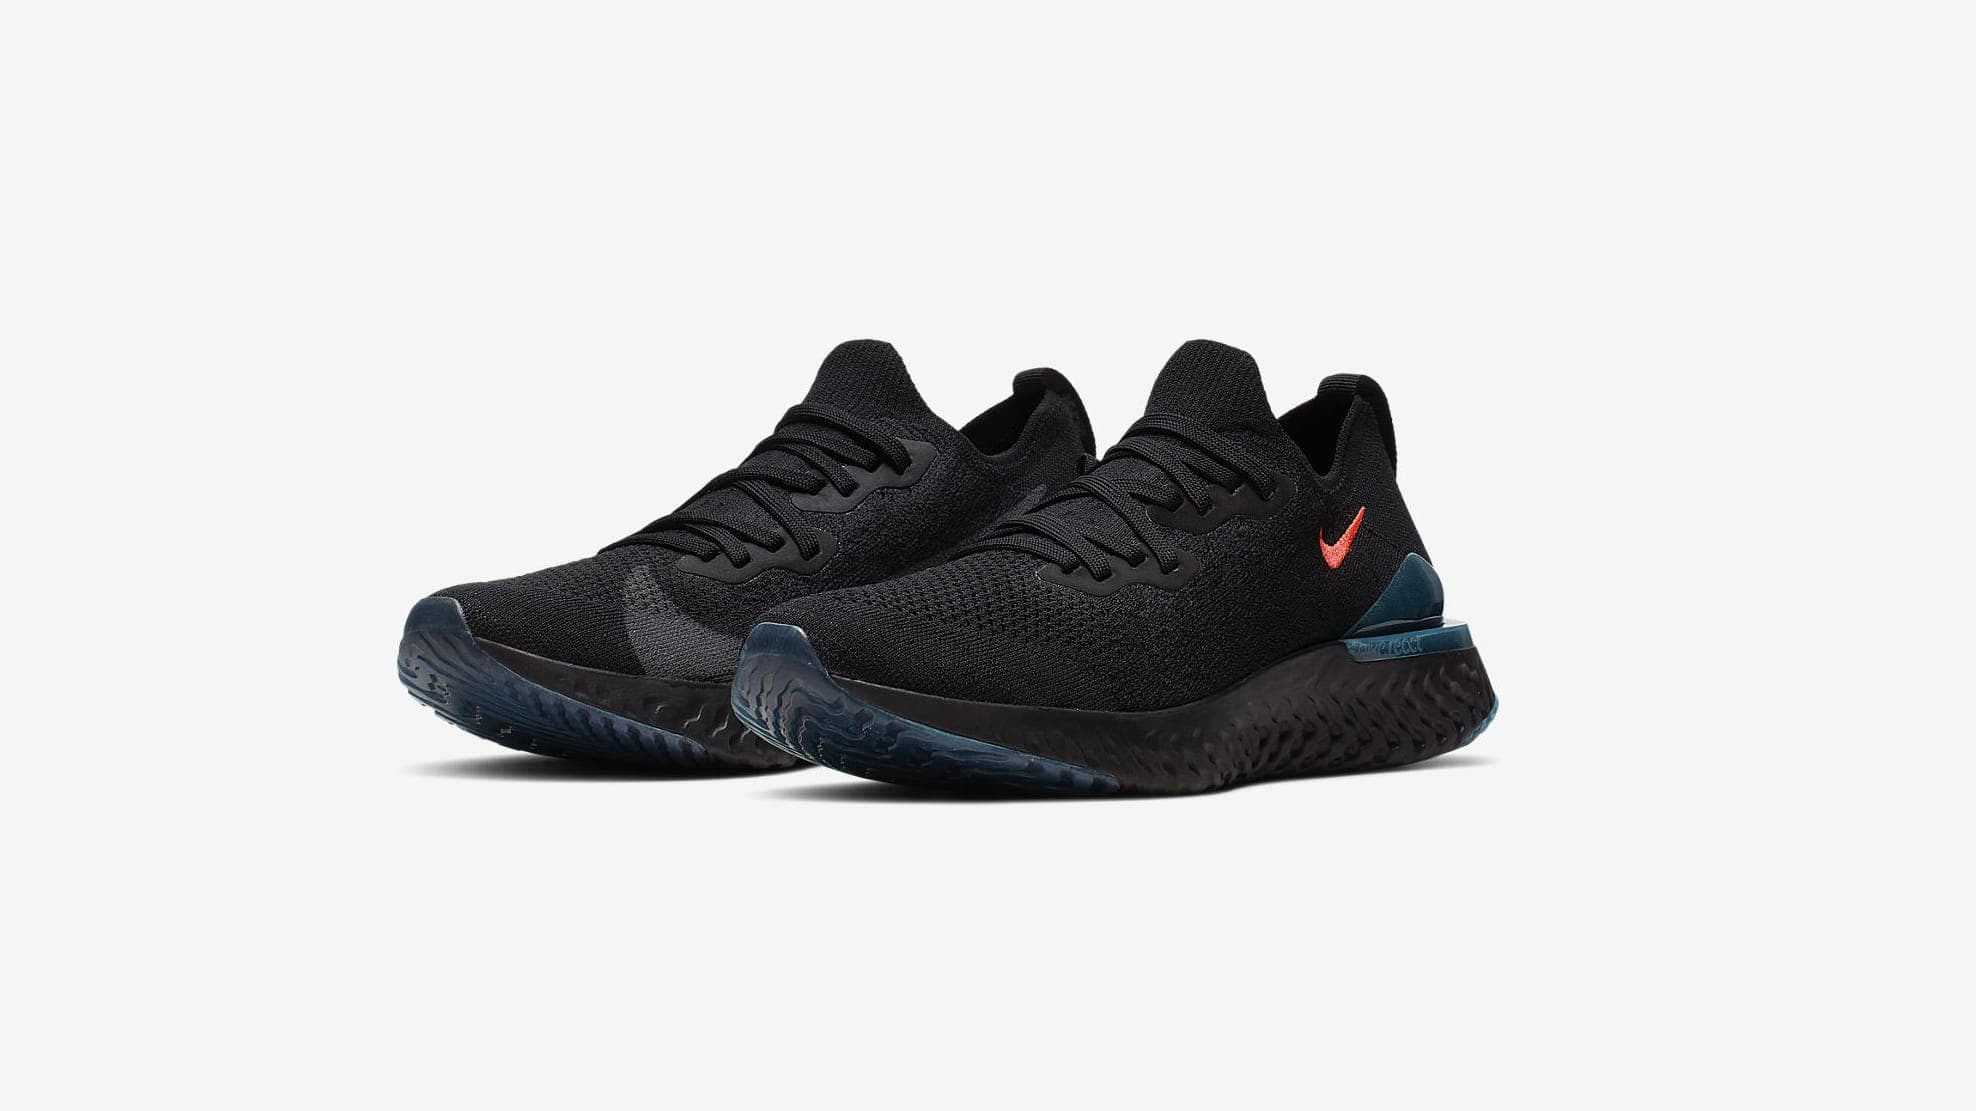 official photos 9e4b0 42556 Distilling the atmosphere of late night Berlin into an athletic sneaker  style, Nike present their latest footwear option, the  Epic React FK 2 .